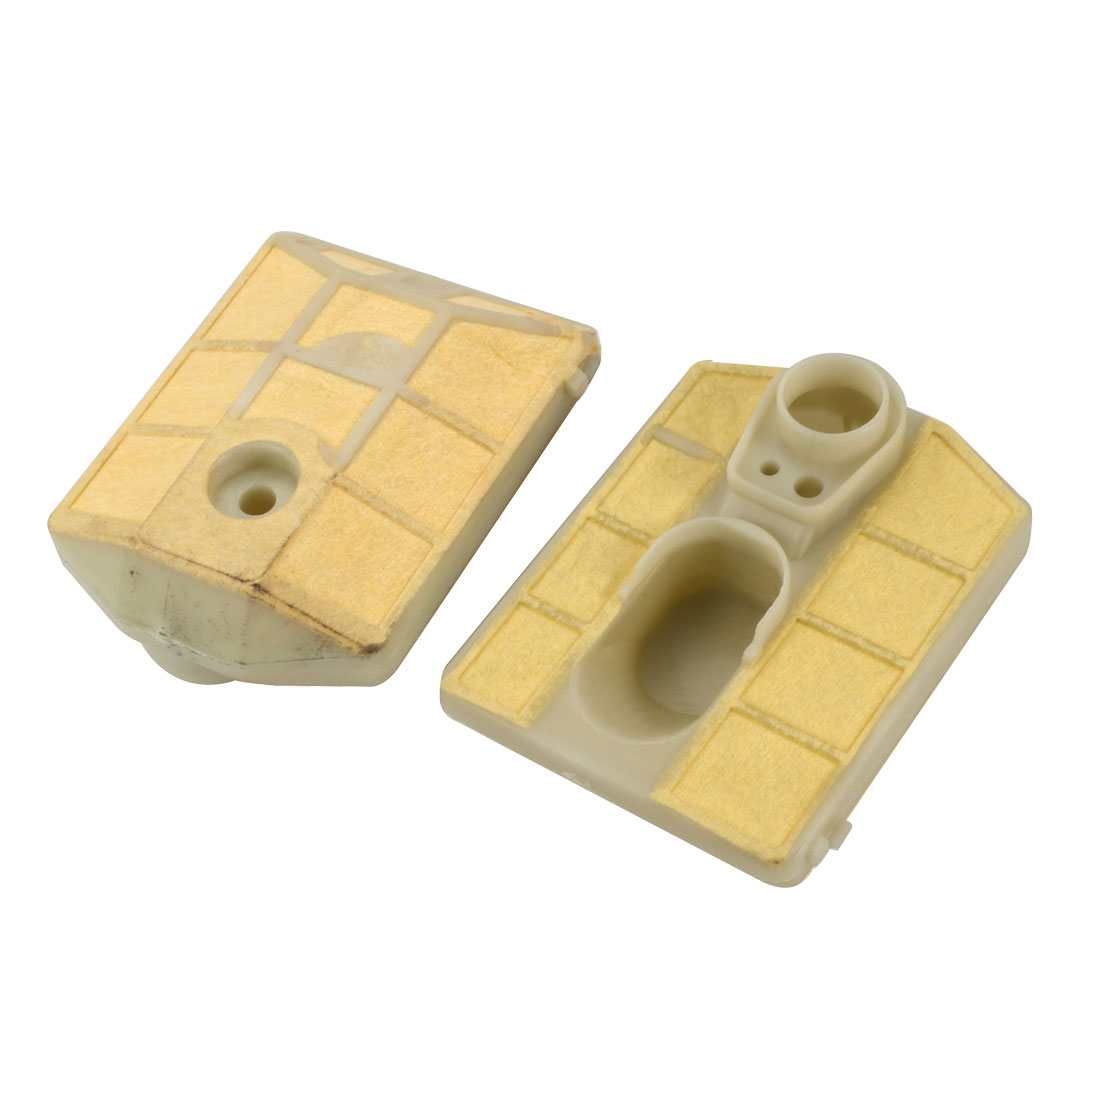 2pcs New Replacement Extra Guard Panel Engine 45 Air Filter Cleaner Accessory